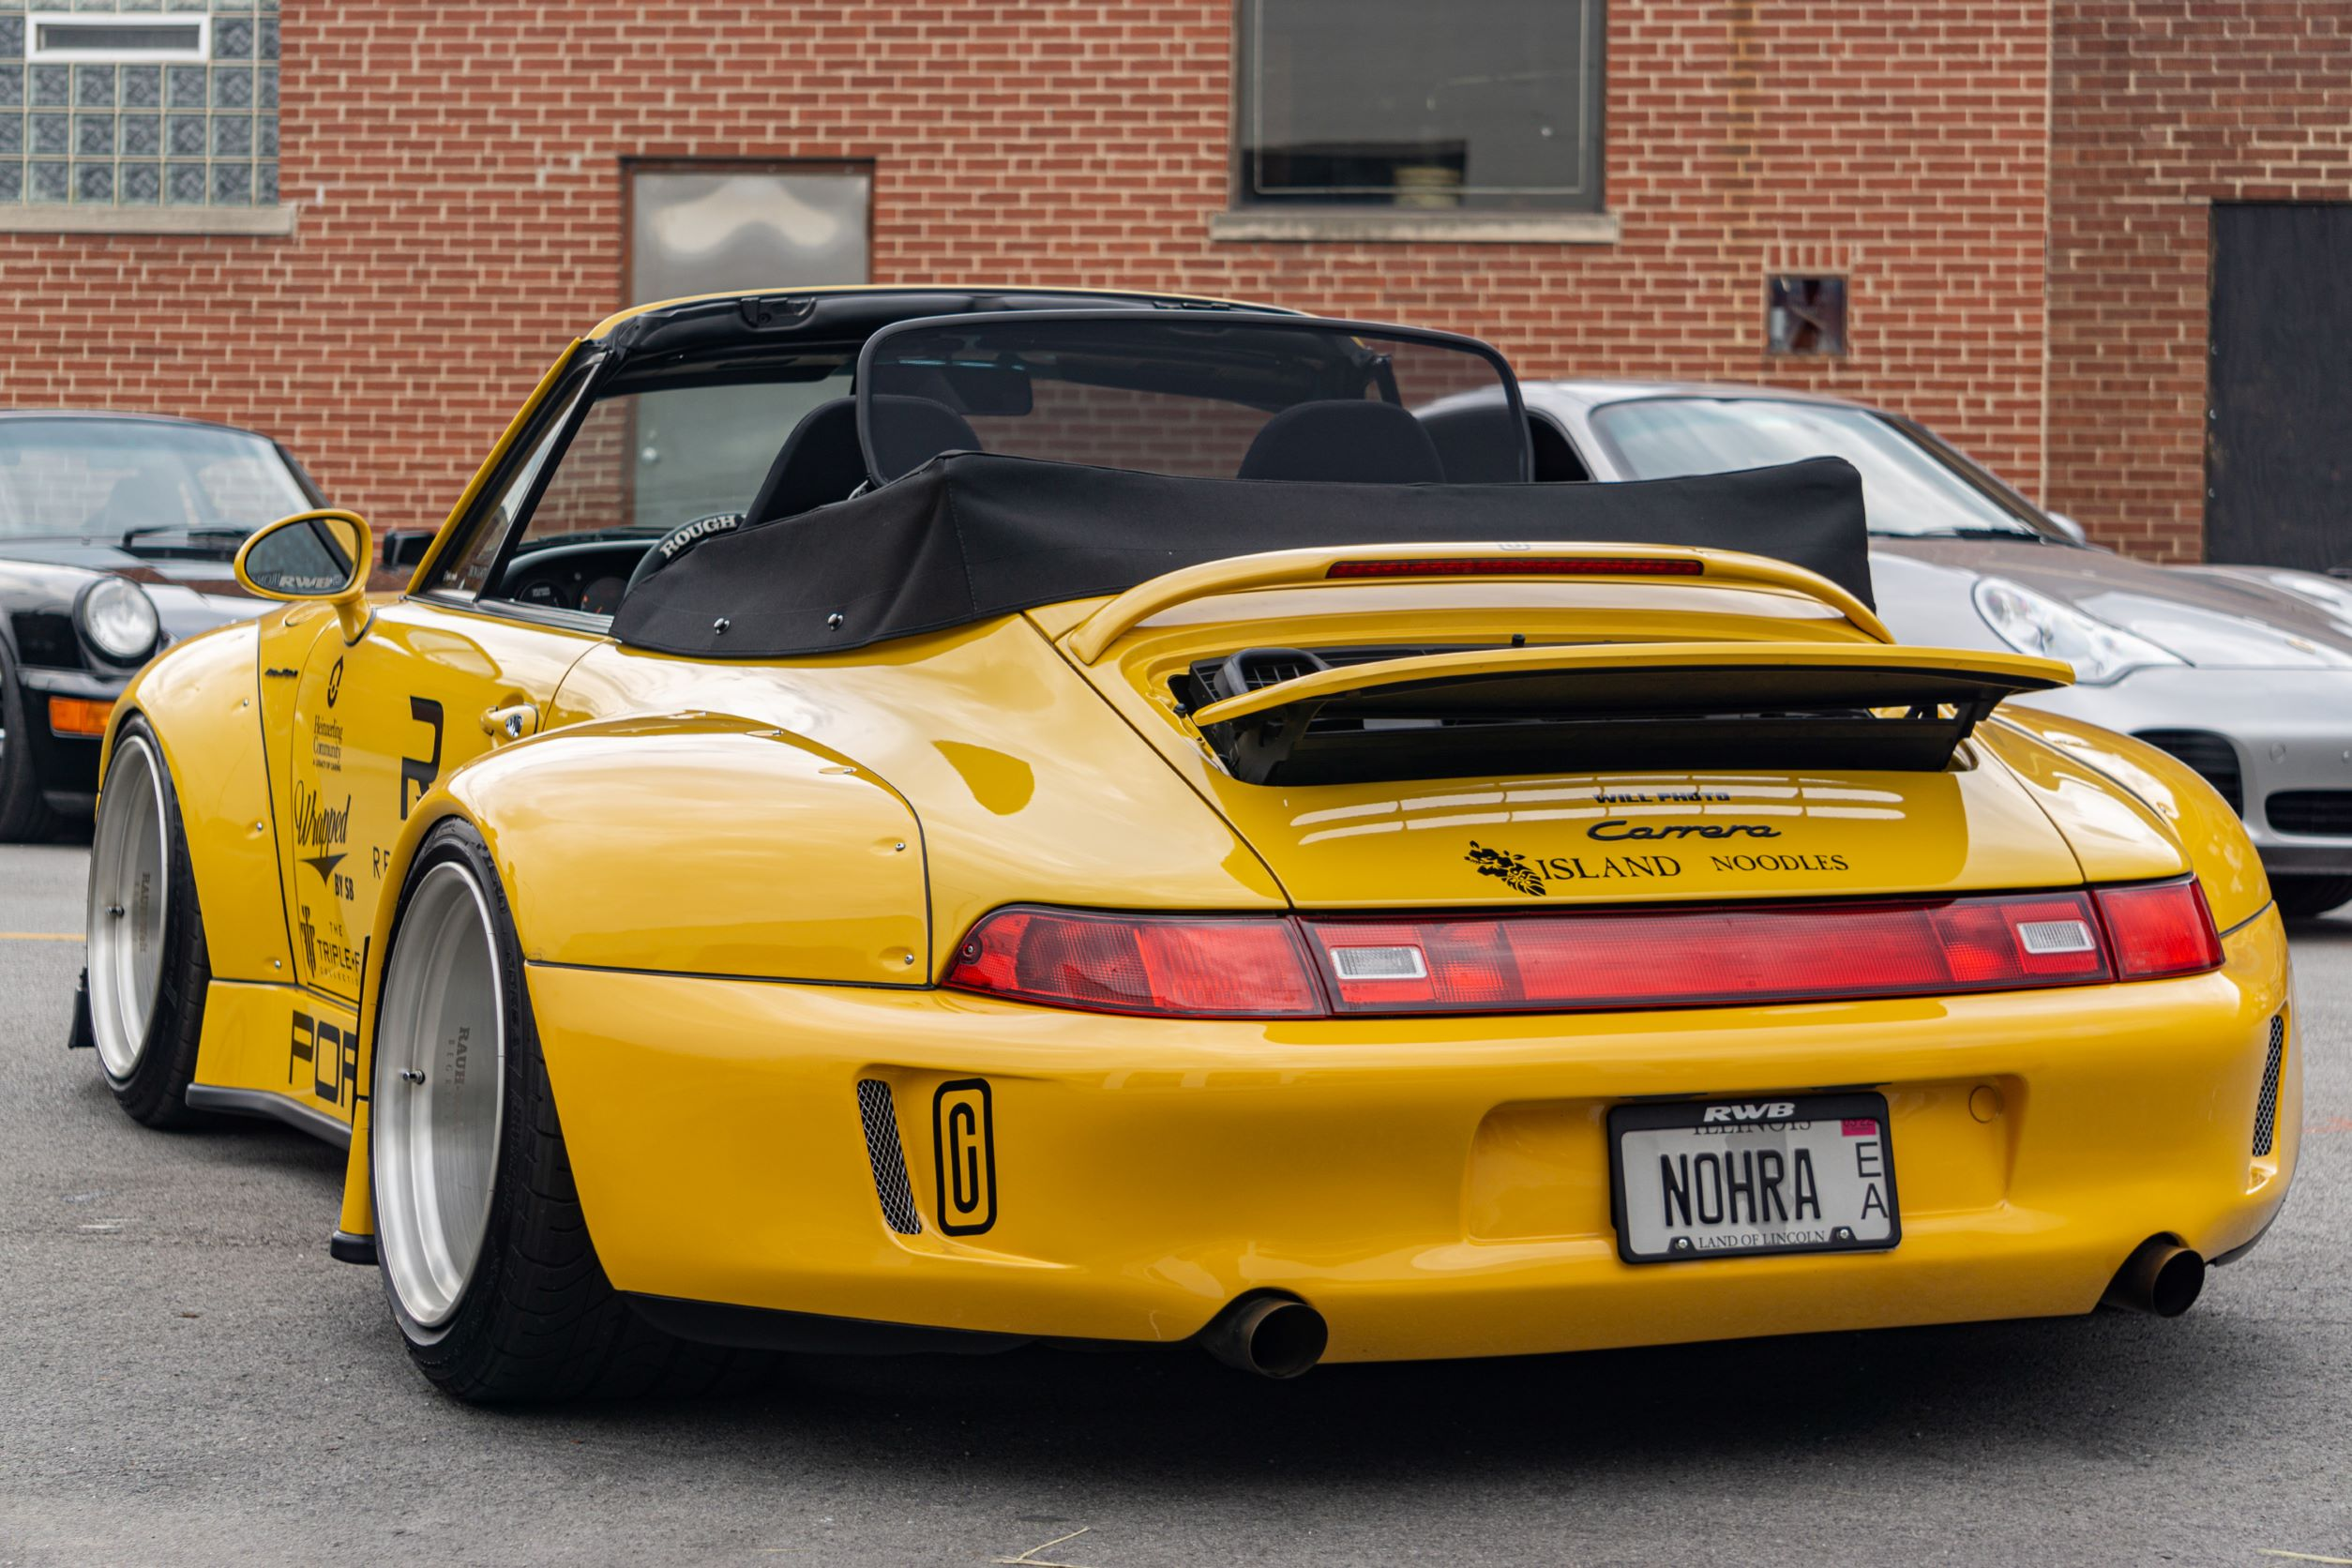 The rear view of the yellow-and-black RWB Porsche 993 911 Cabriolet 'Nohra'